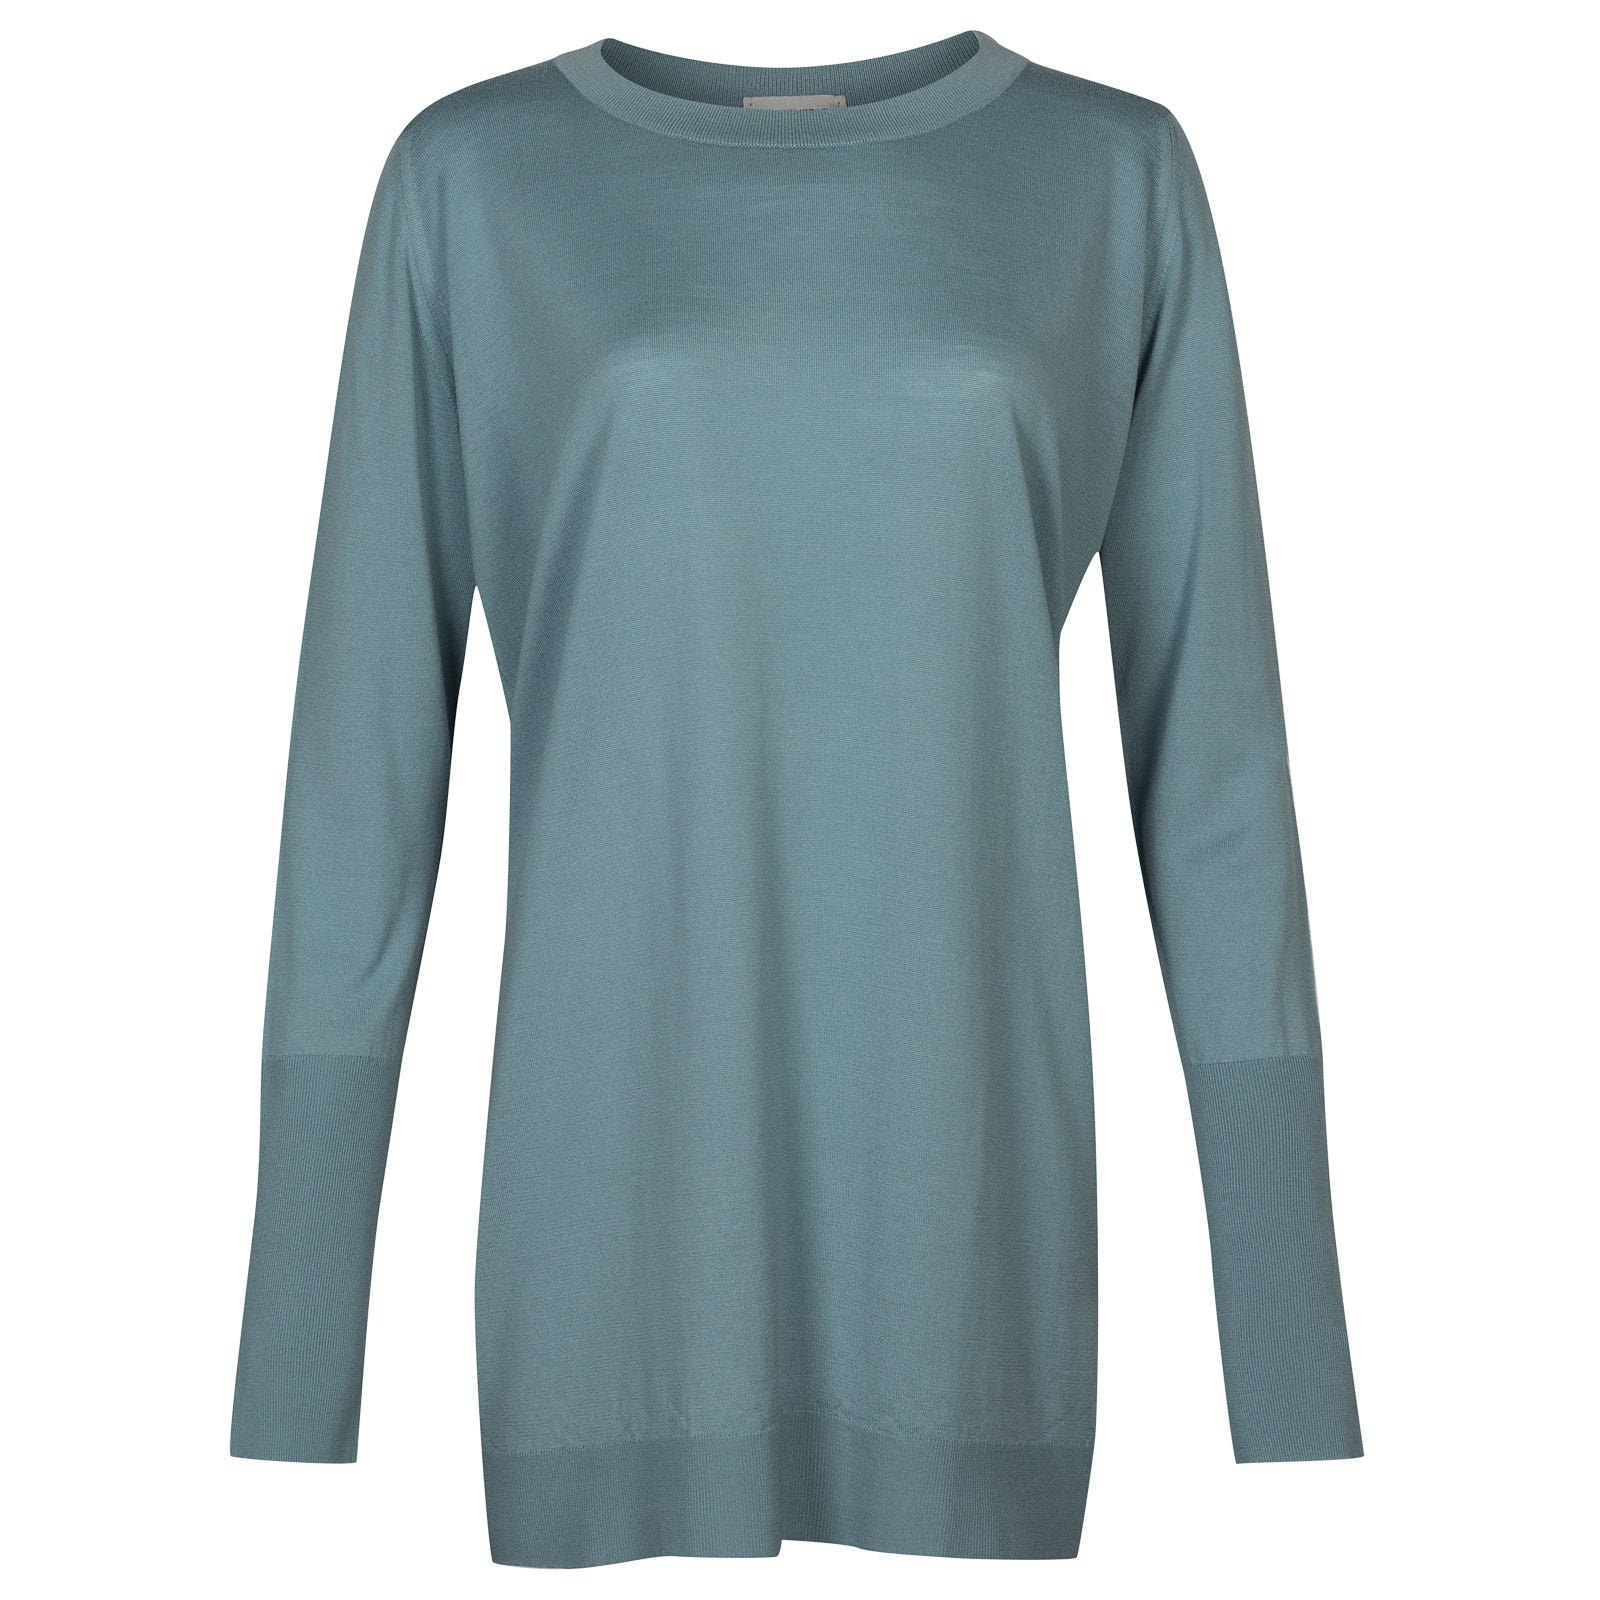 John Smedley molloy Merino Wool Sweater in Summit Blue-M